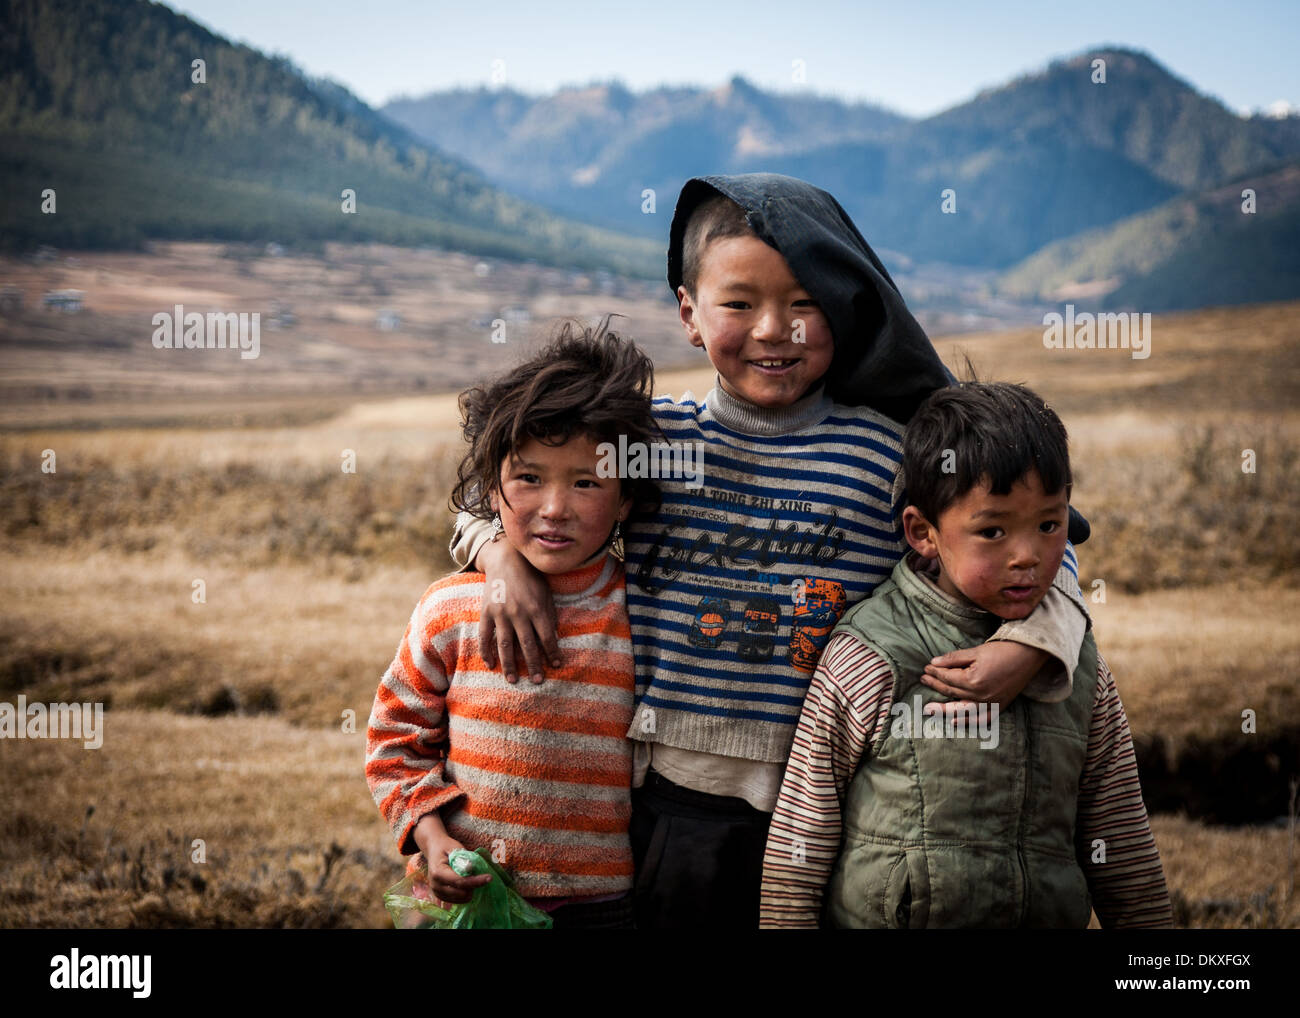 Bhutanese Children playing in the Phobjikha Valley, Bhutan - Stock Image